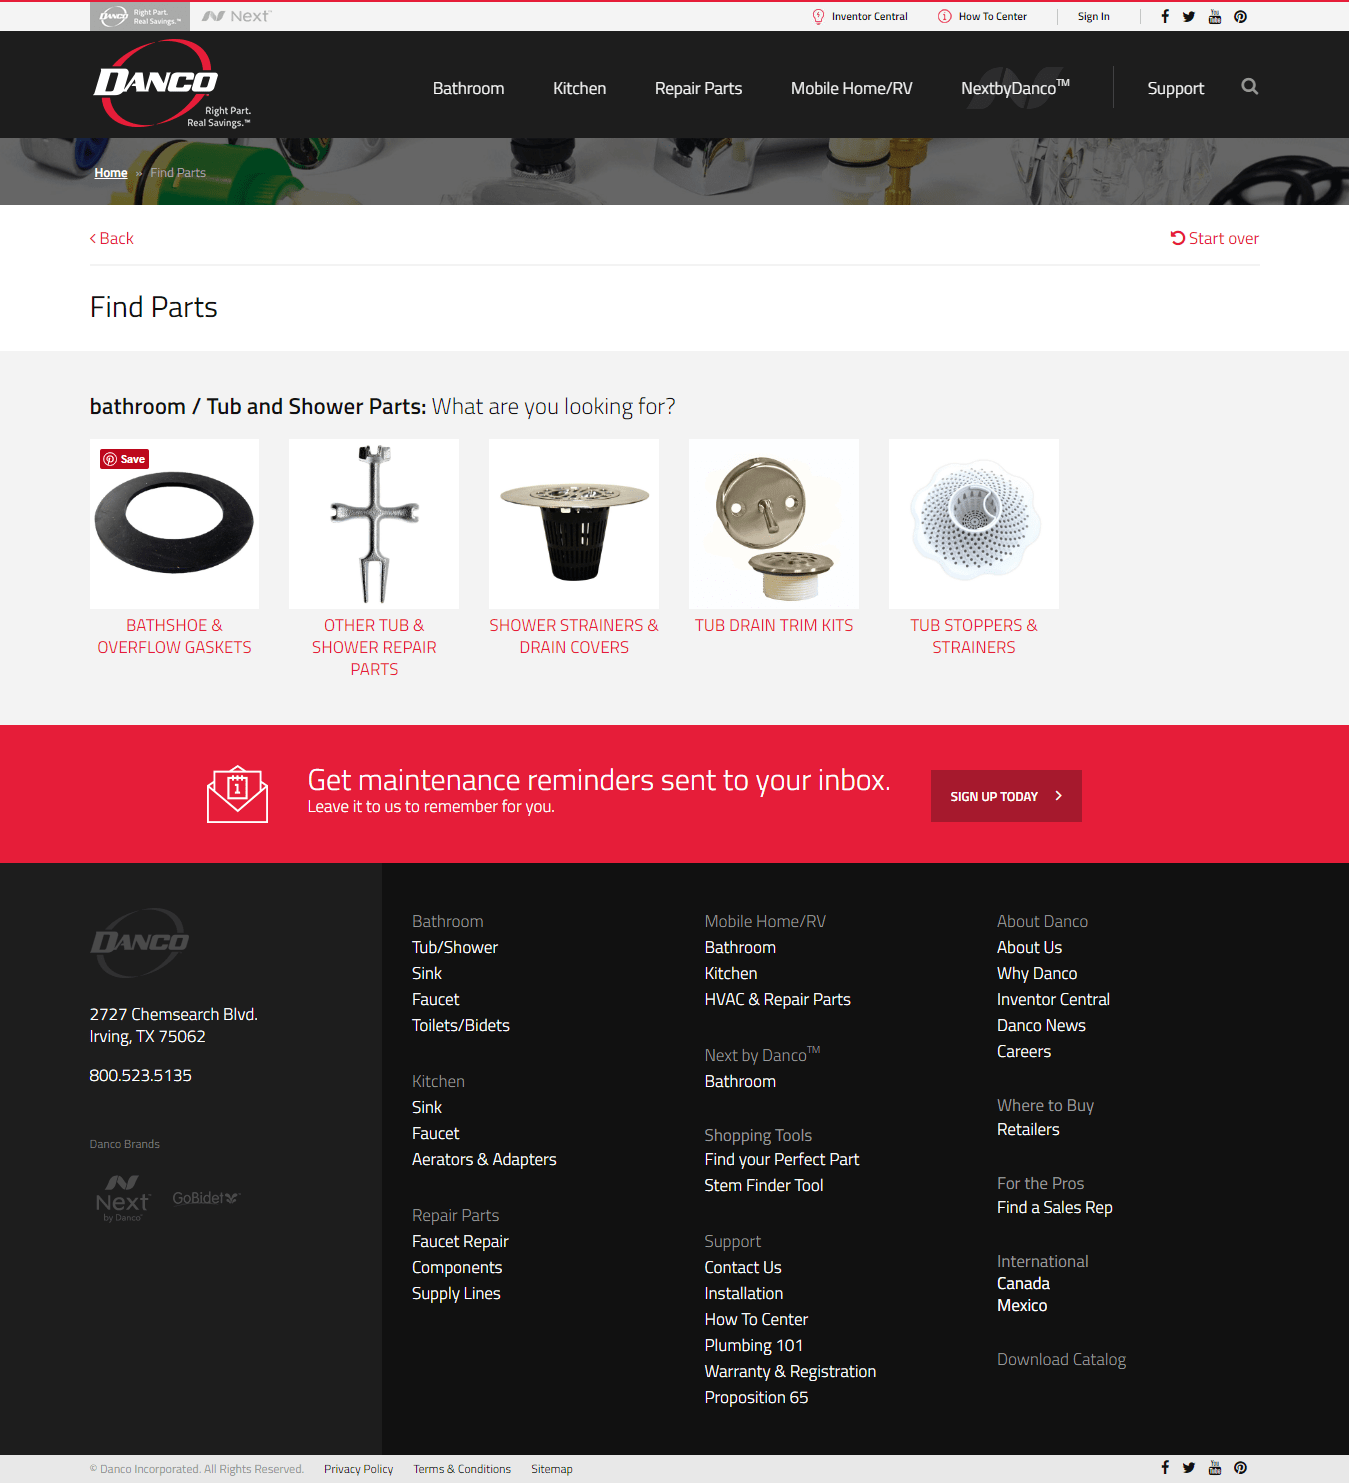 Find your perfect plumbing part with Danco3